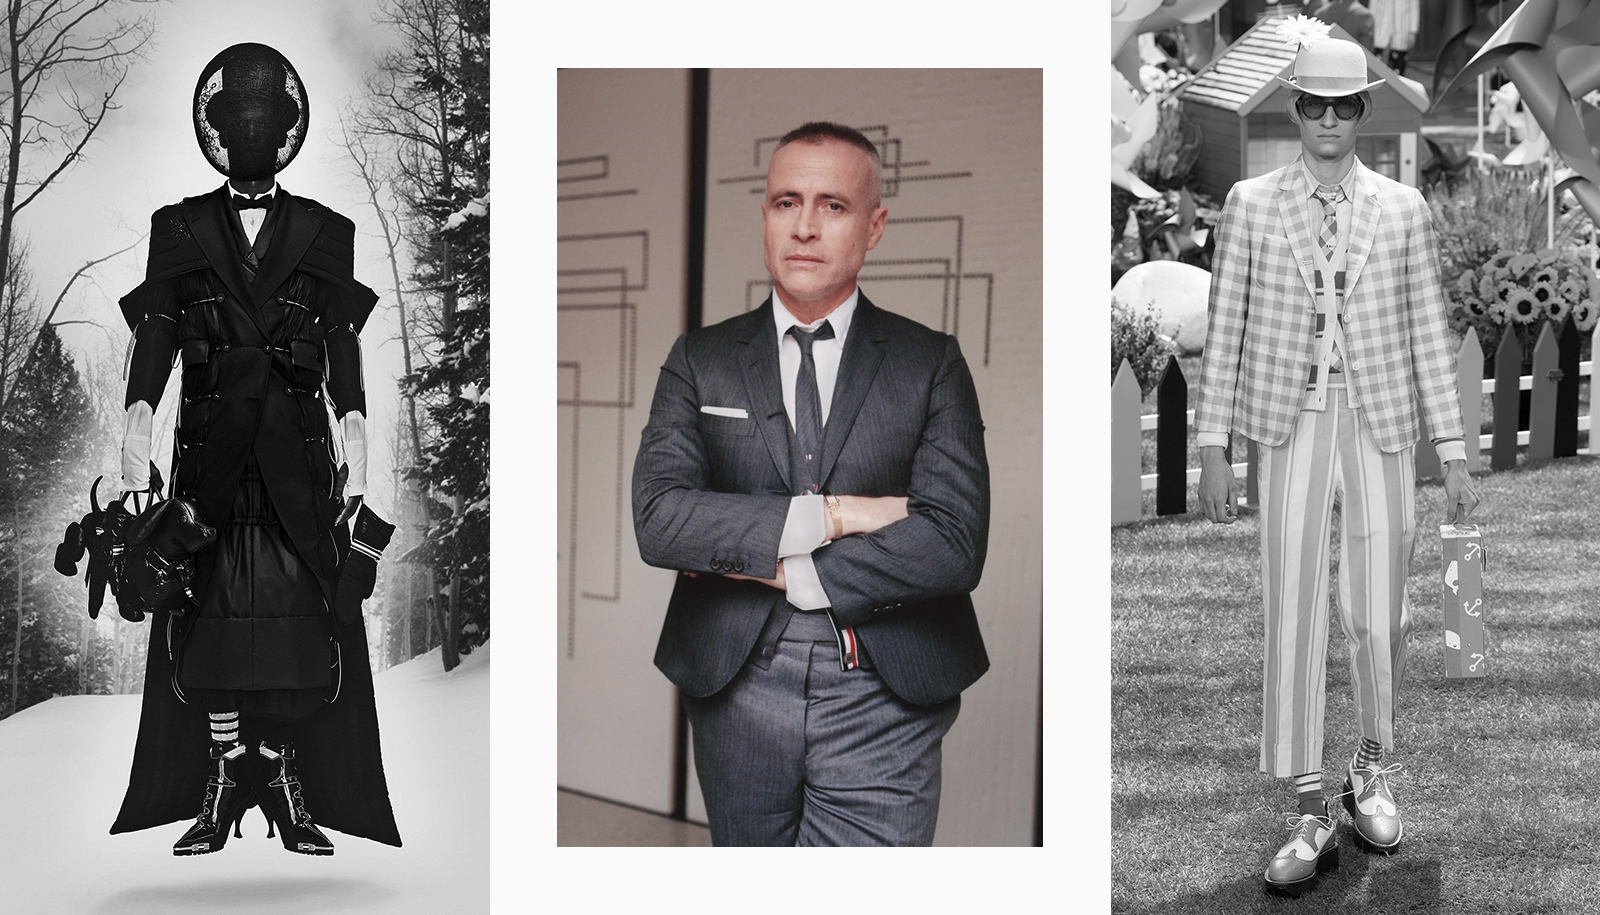 Who is Thom Browne and is Thom Browne worth it?